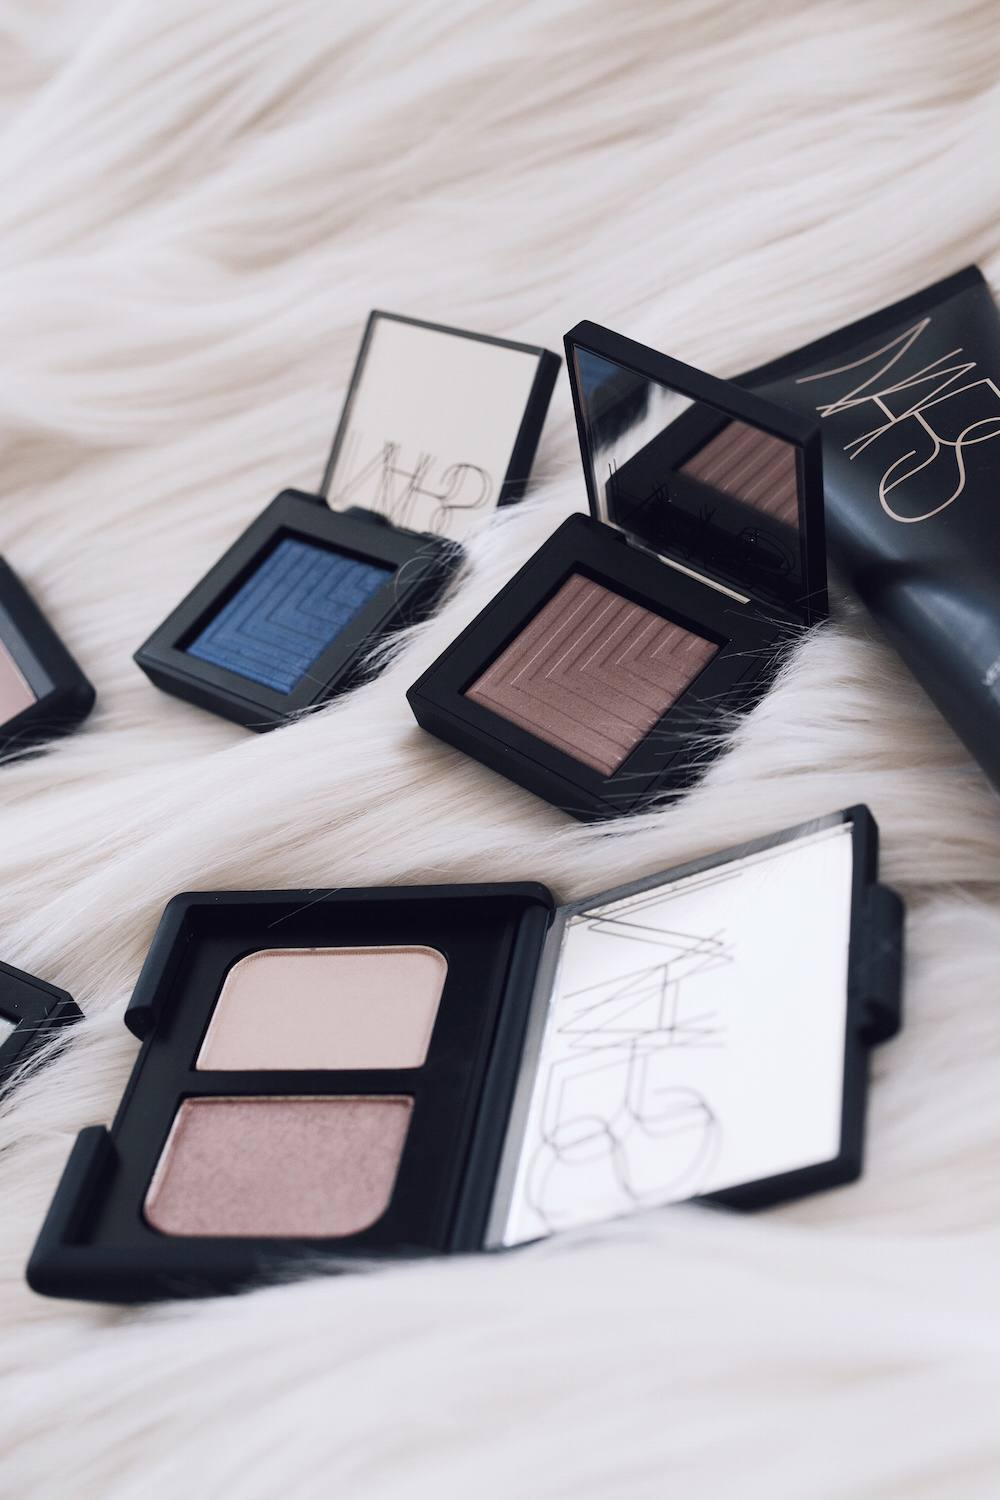 Nars makeup packaging